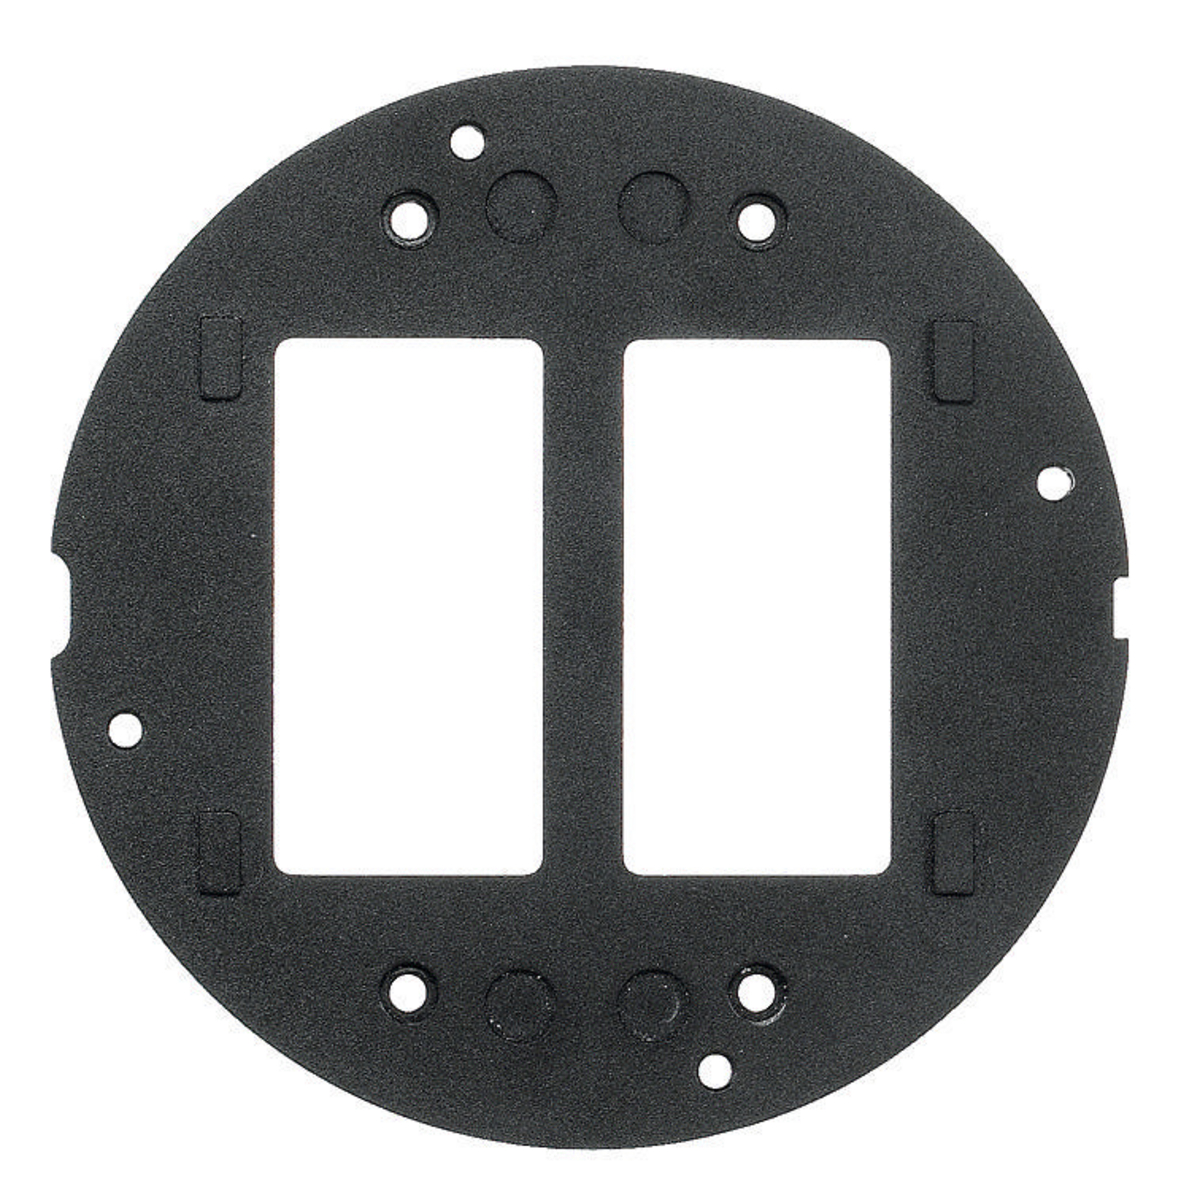 Hubbell S1SP Sub Plate